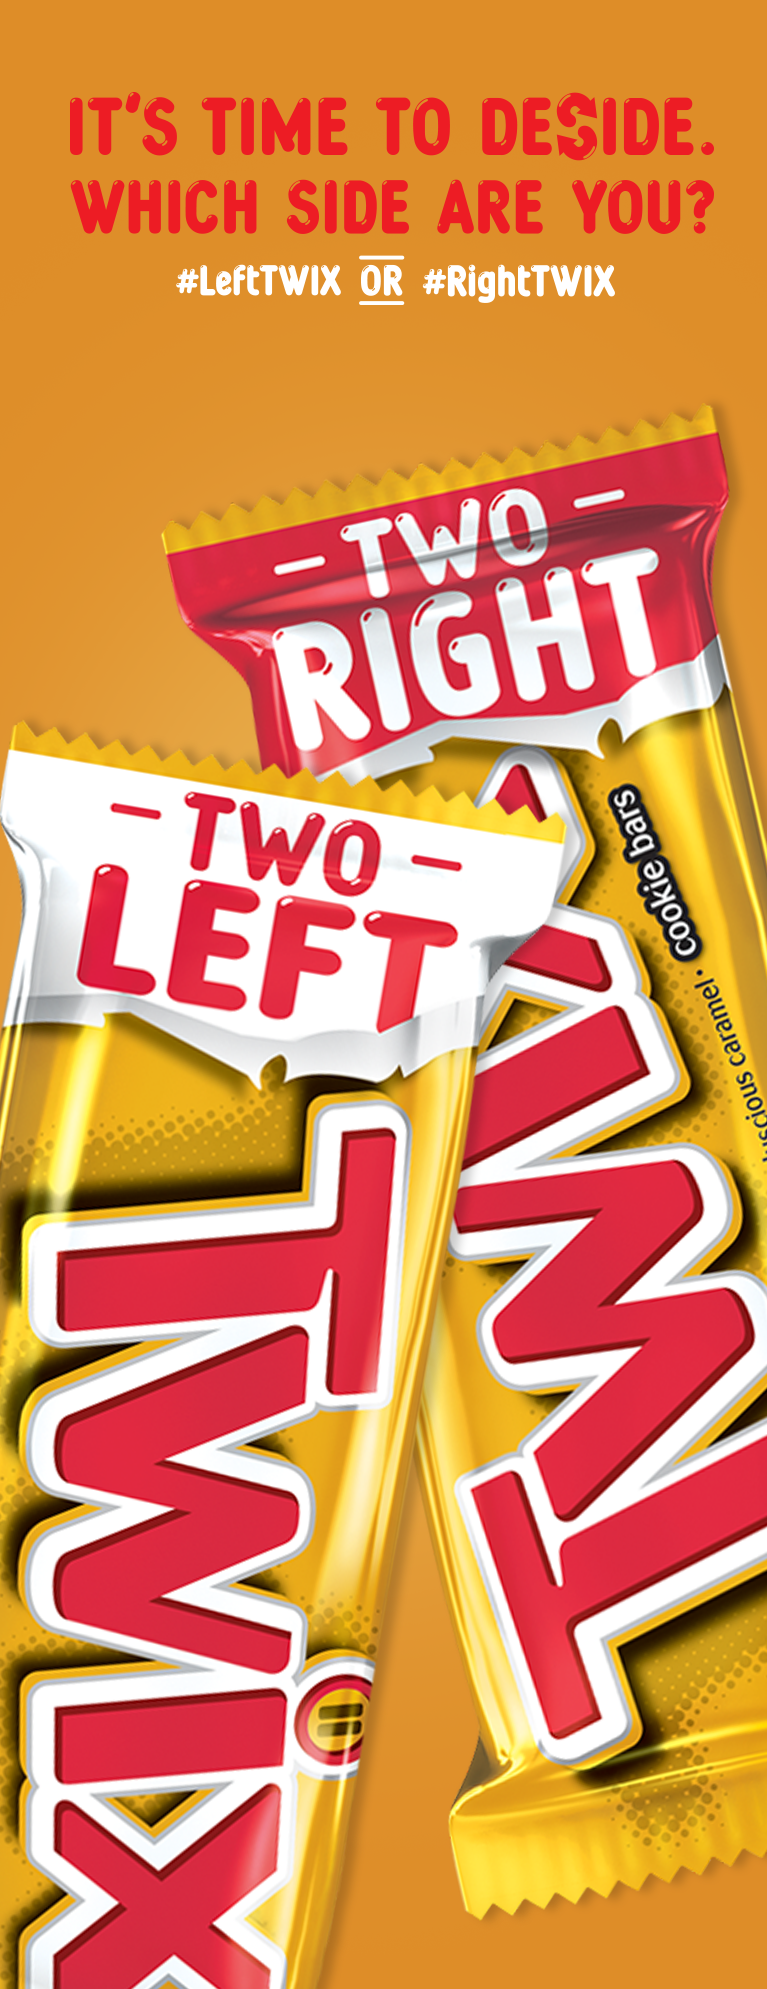 TWIX - #LeftTWIX or #RightTWIX? Try both and pick a side...